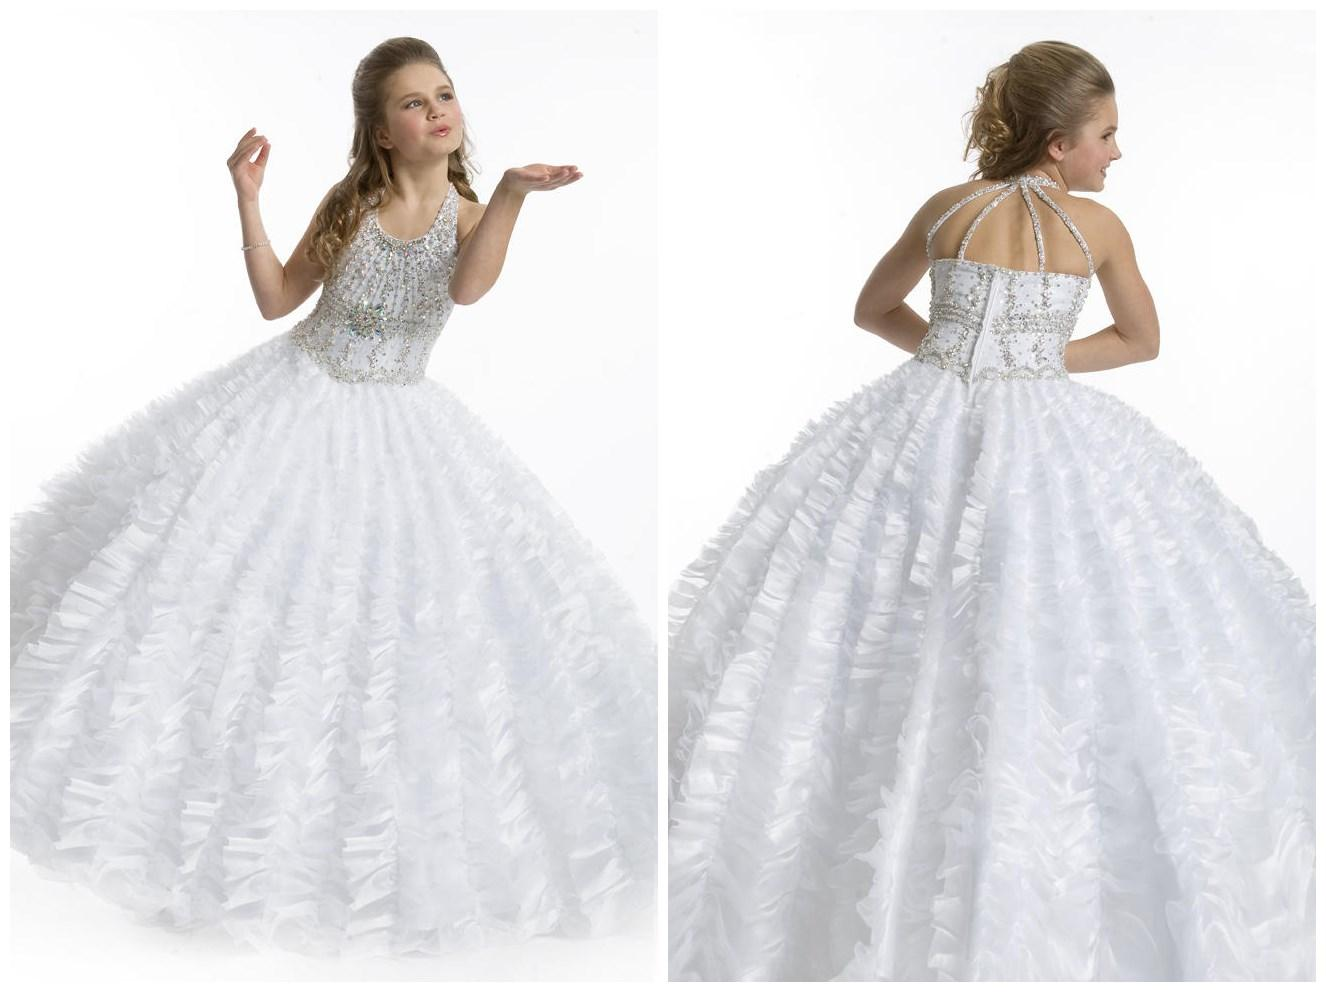 Big Ball Gown Tull White Halter Beads First munion